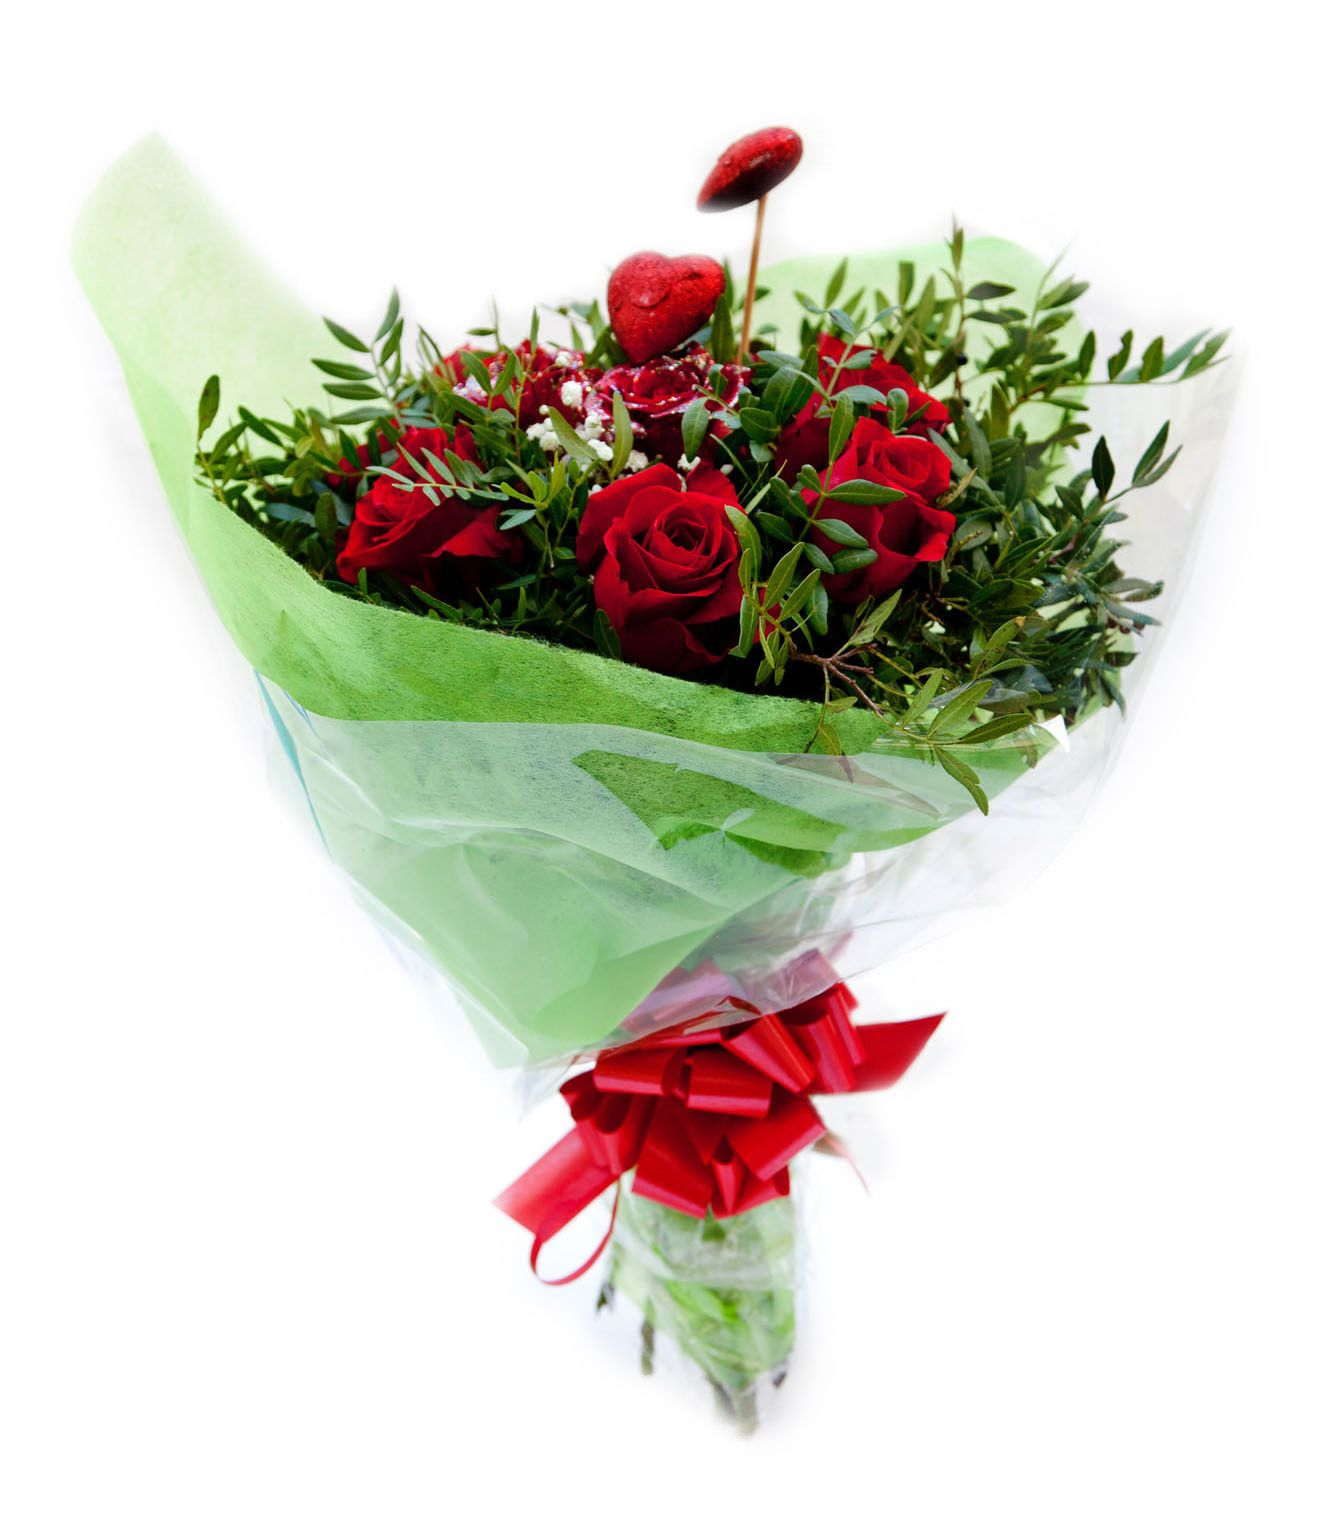 Anniversary Celebration. Bouquet of 6 premium freshly-cut red roses with fillers and wrapped in organza and cellophane.